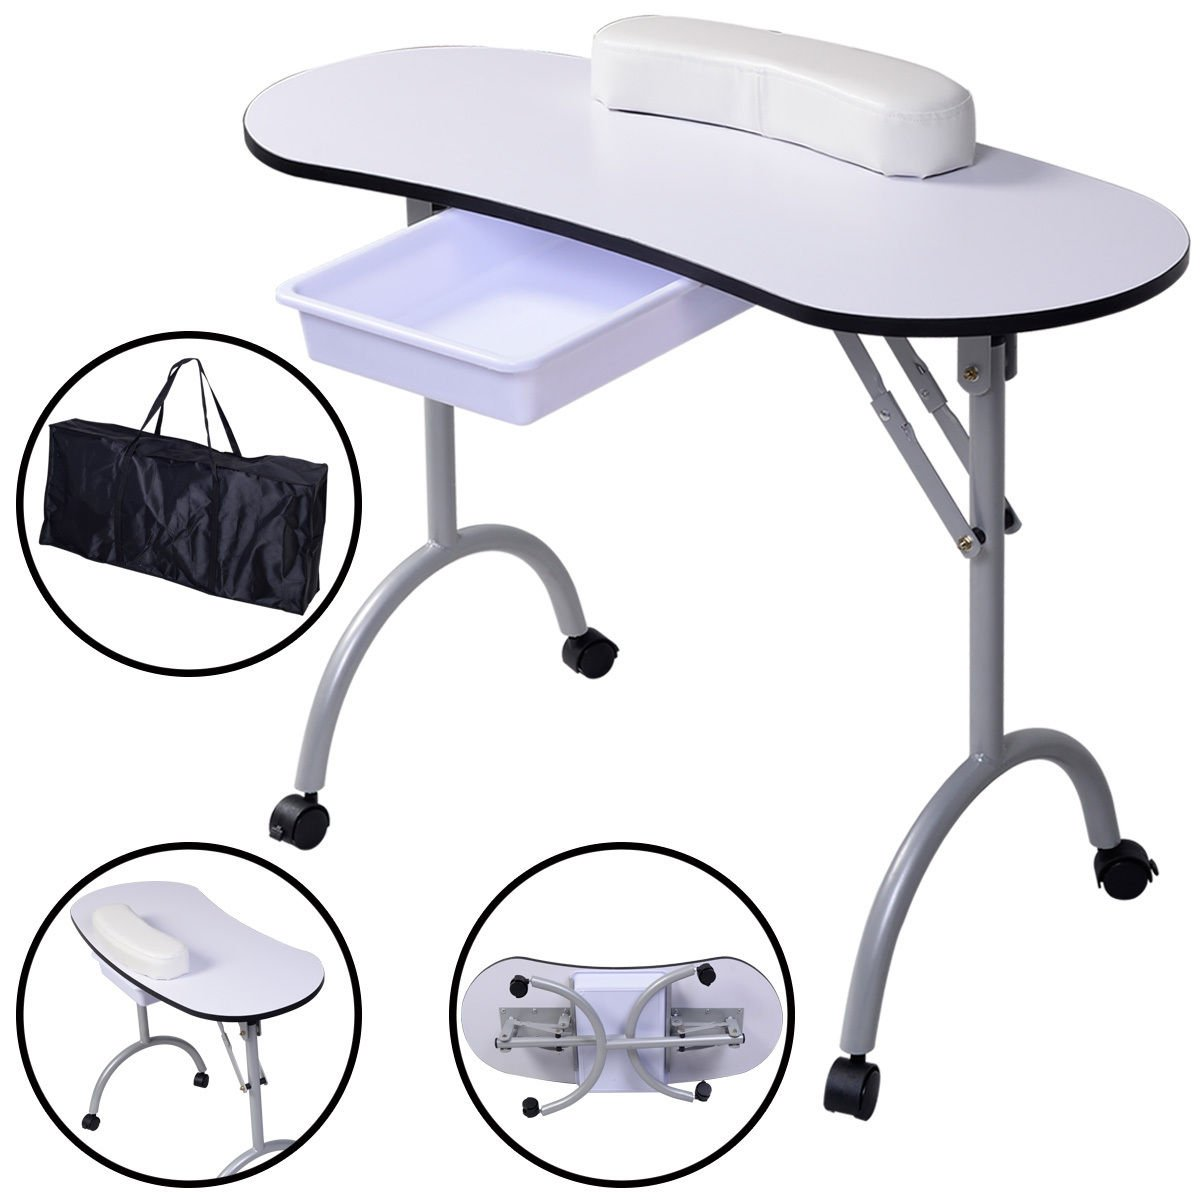 Portable Manicure Nail Table Station Desk Spa Beauty Salon Equipment White Super-comfy wrist cushions Durable plastic drawer for accessories by Marketworldcup